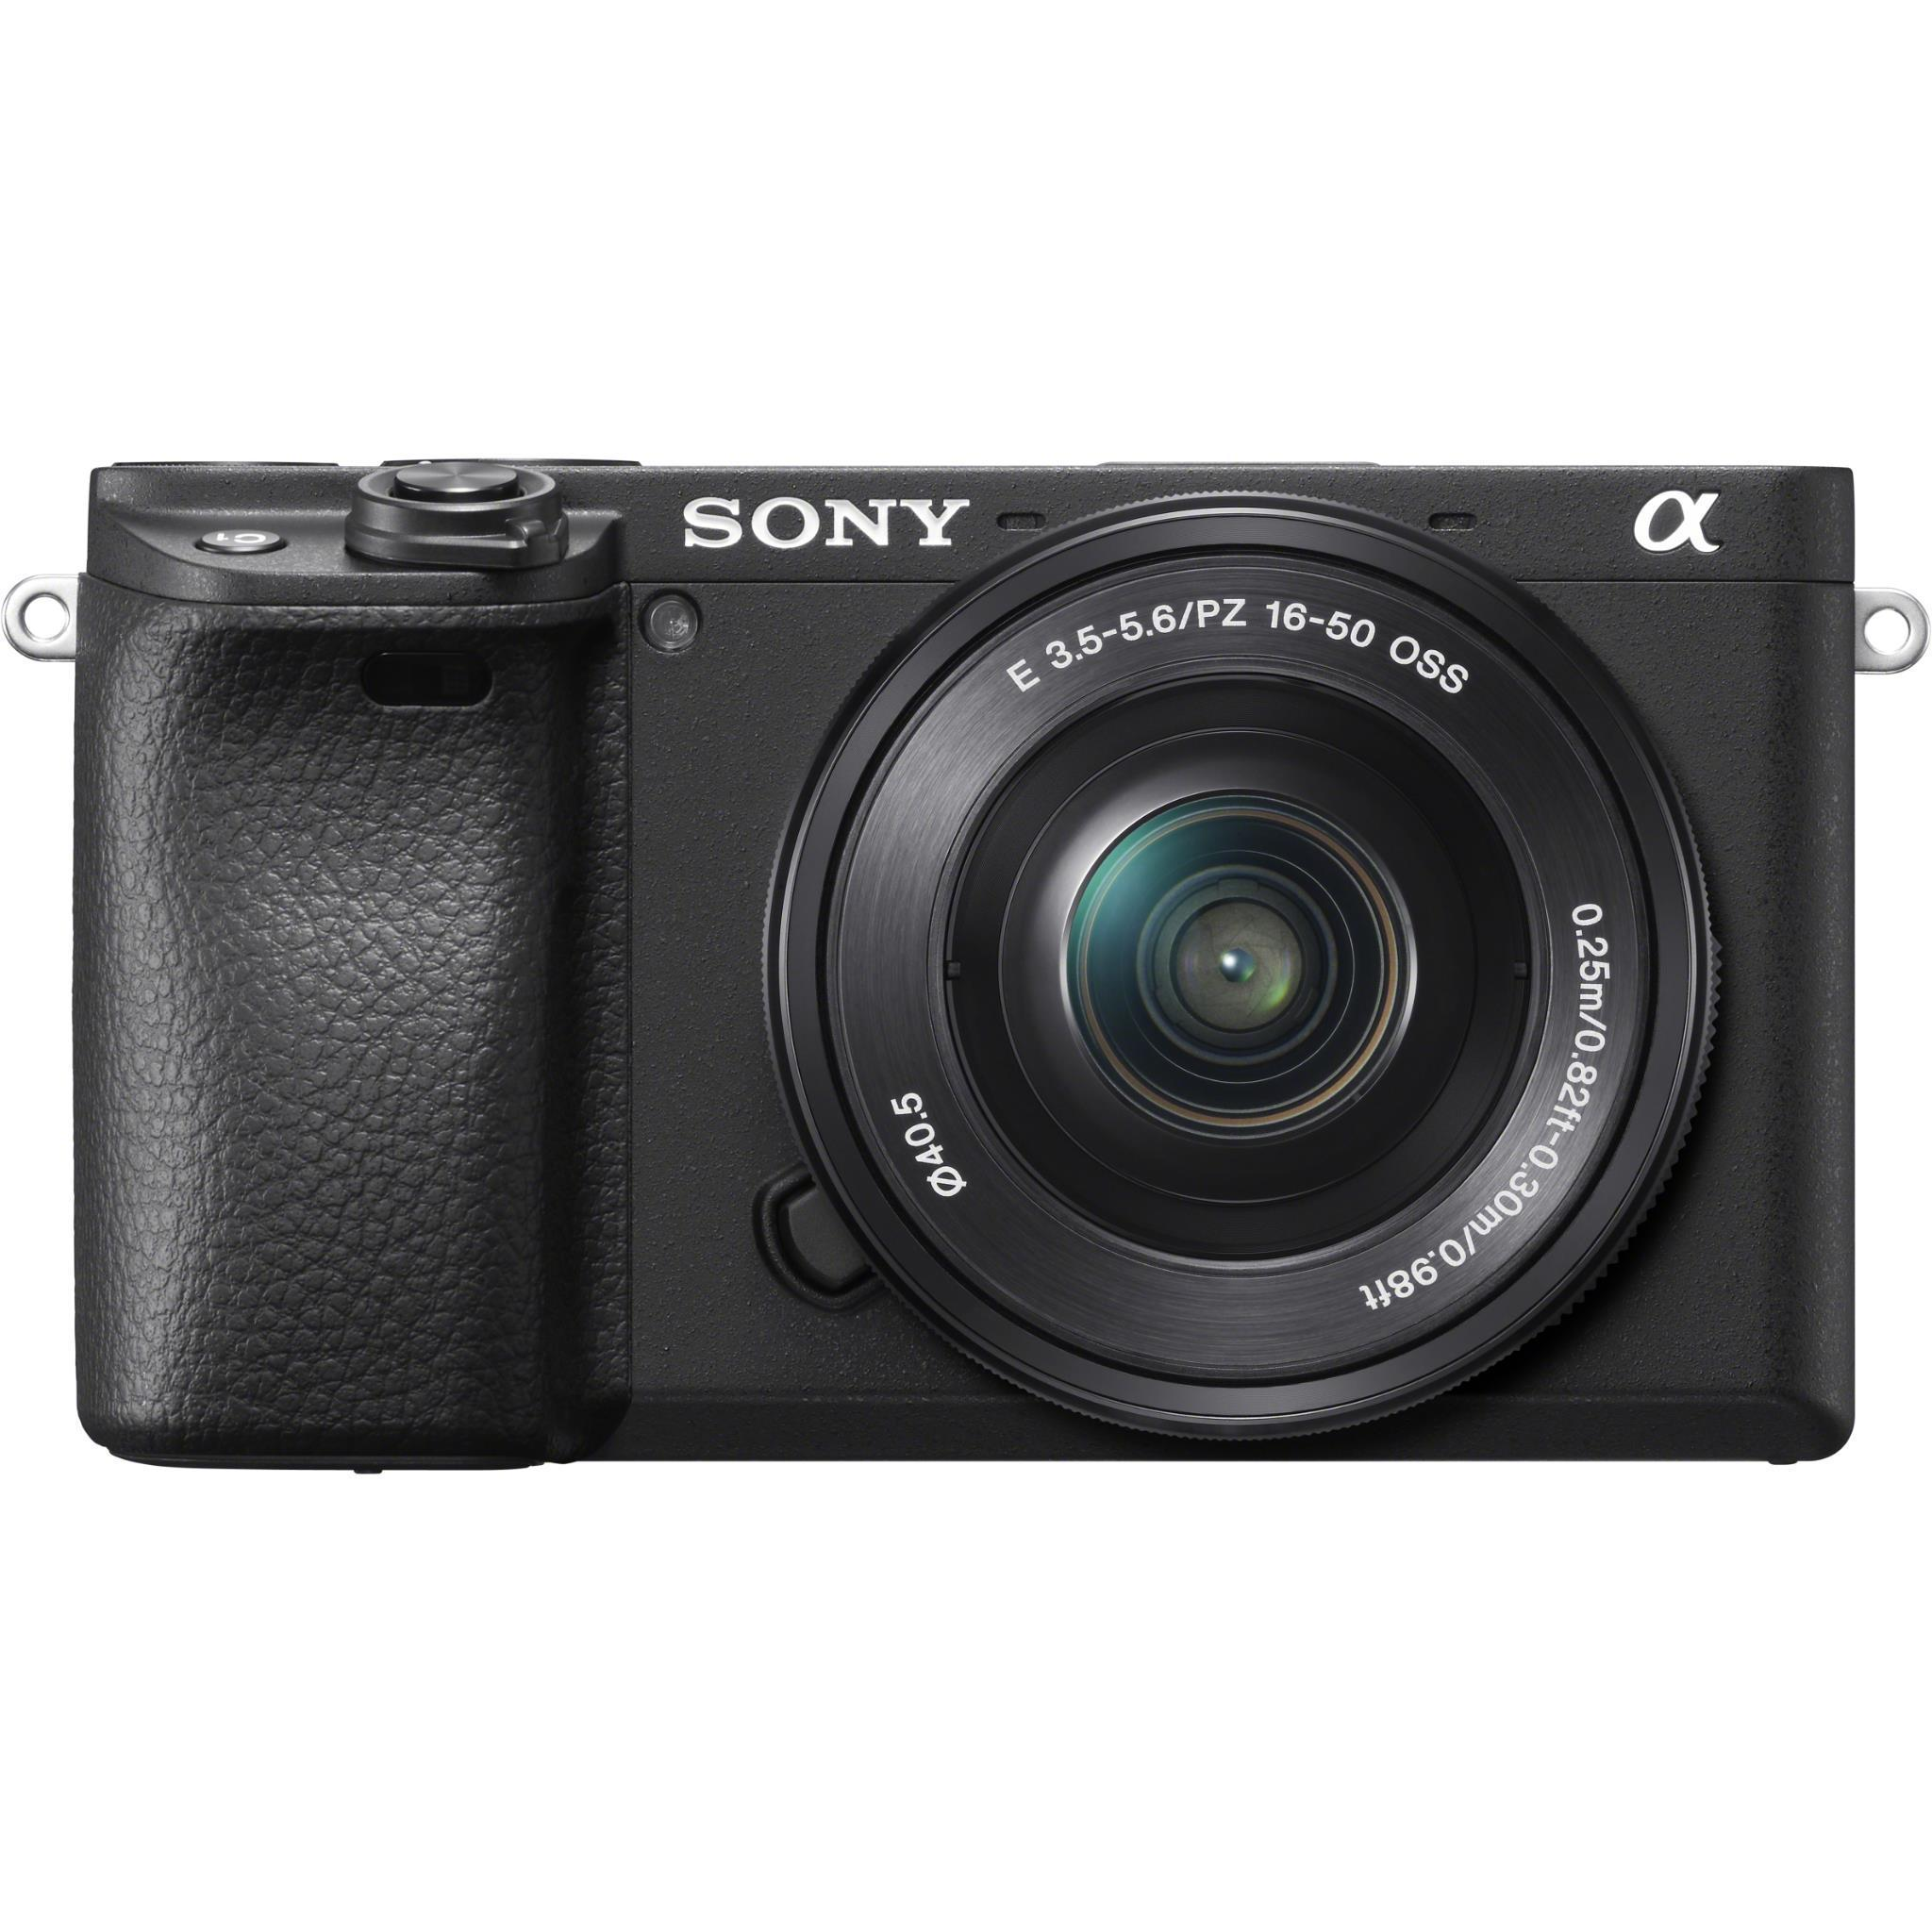 Sony Alpha A6400 Mirrorless Camera with Ultra-High Speed AF [4K Video] with 16-50mm Lens (Black)